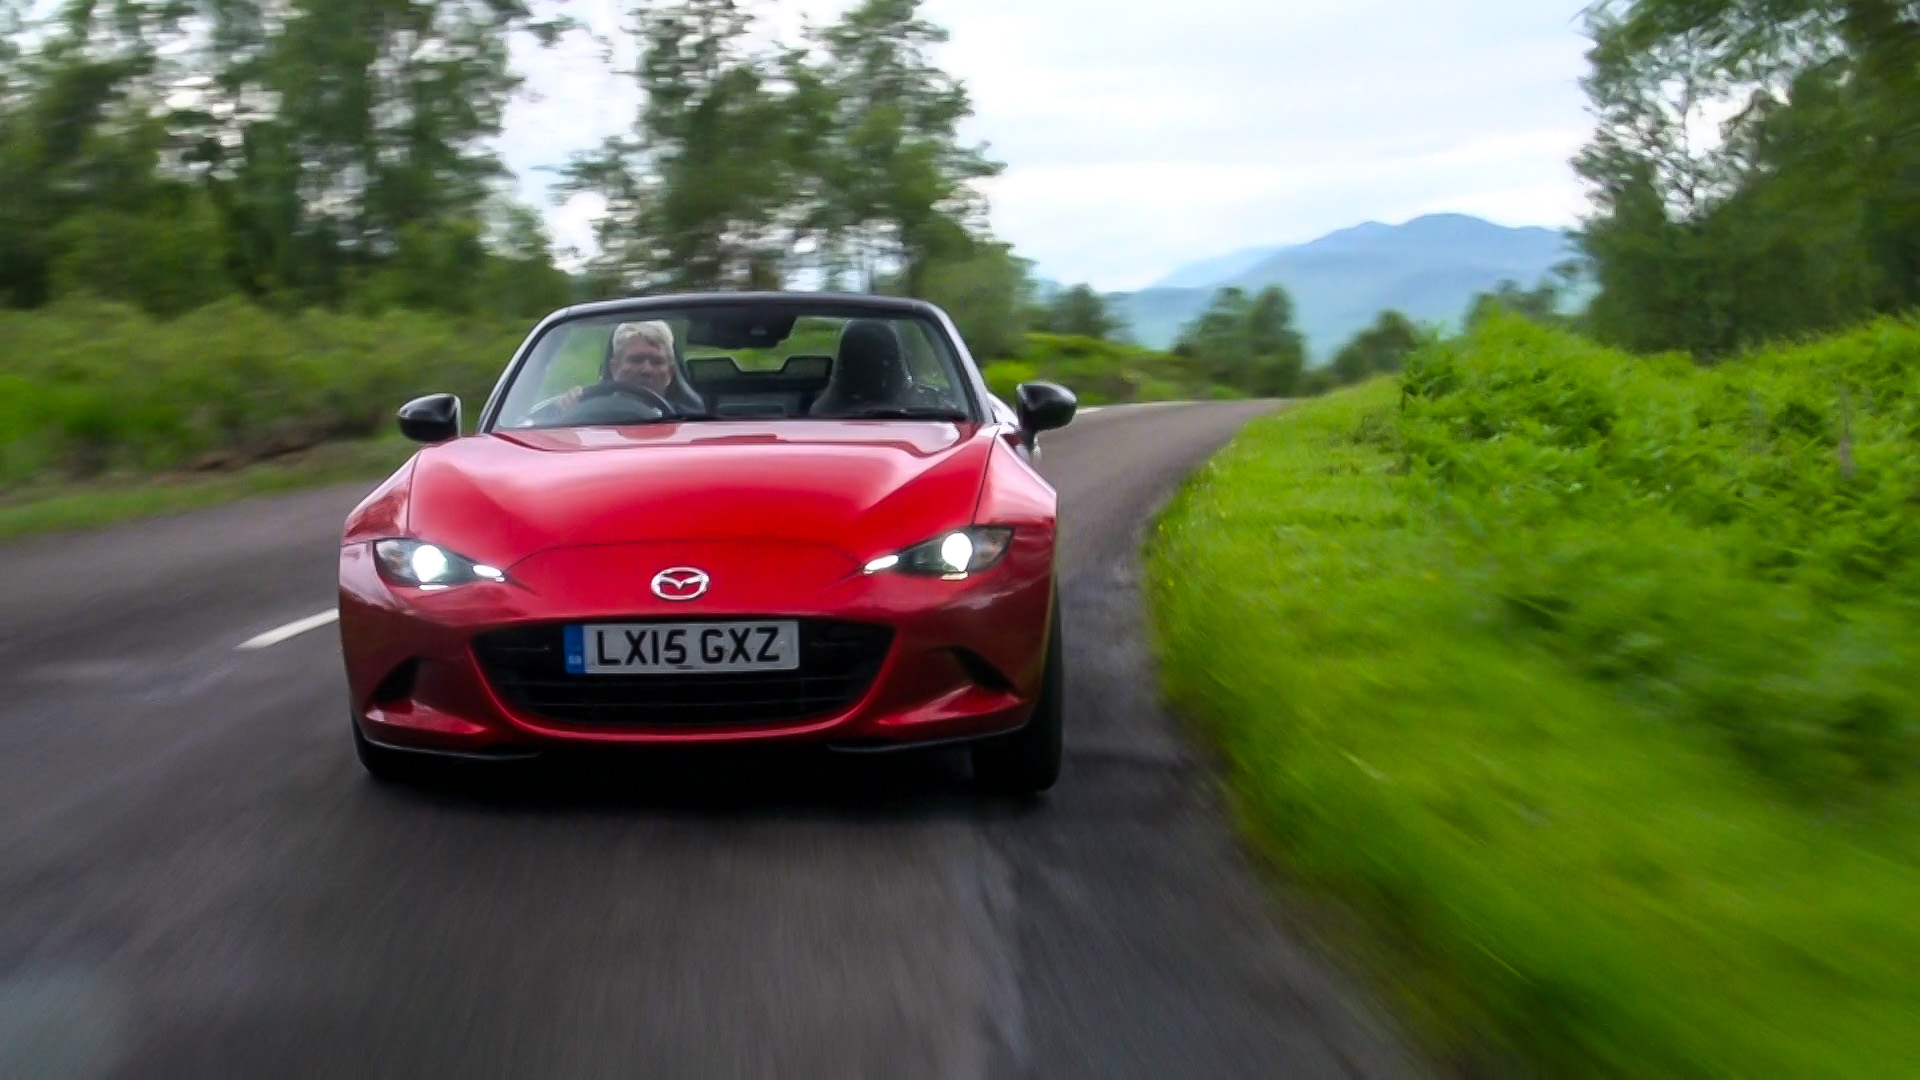 2016 Mazda Mx 5 Test Drive (Photo 29 of 31)